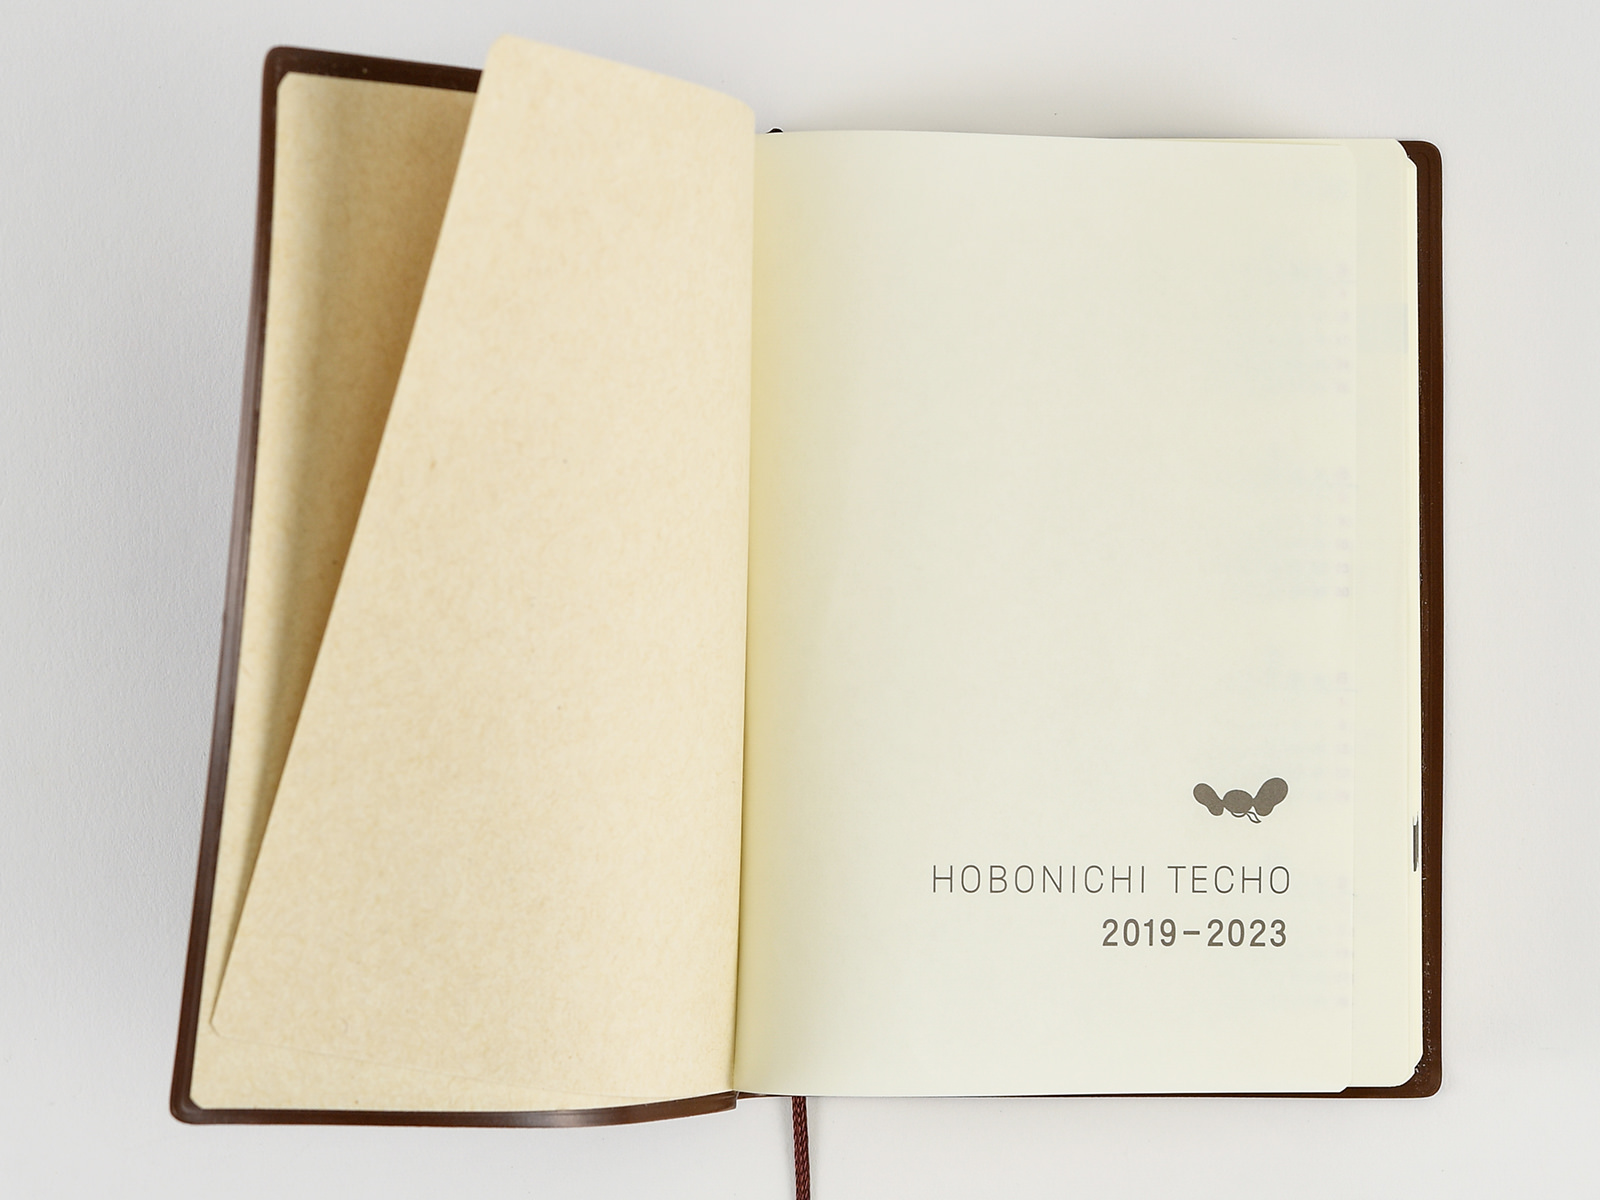 hobonichi techo 5 year techotitle page yearly calendar